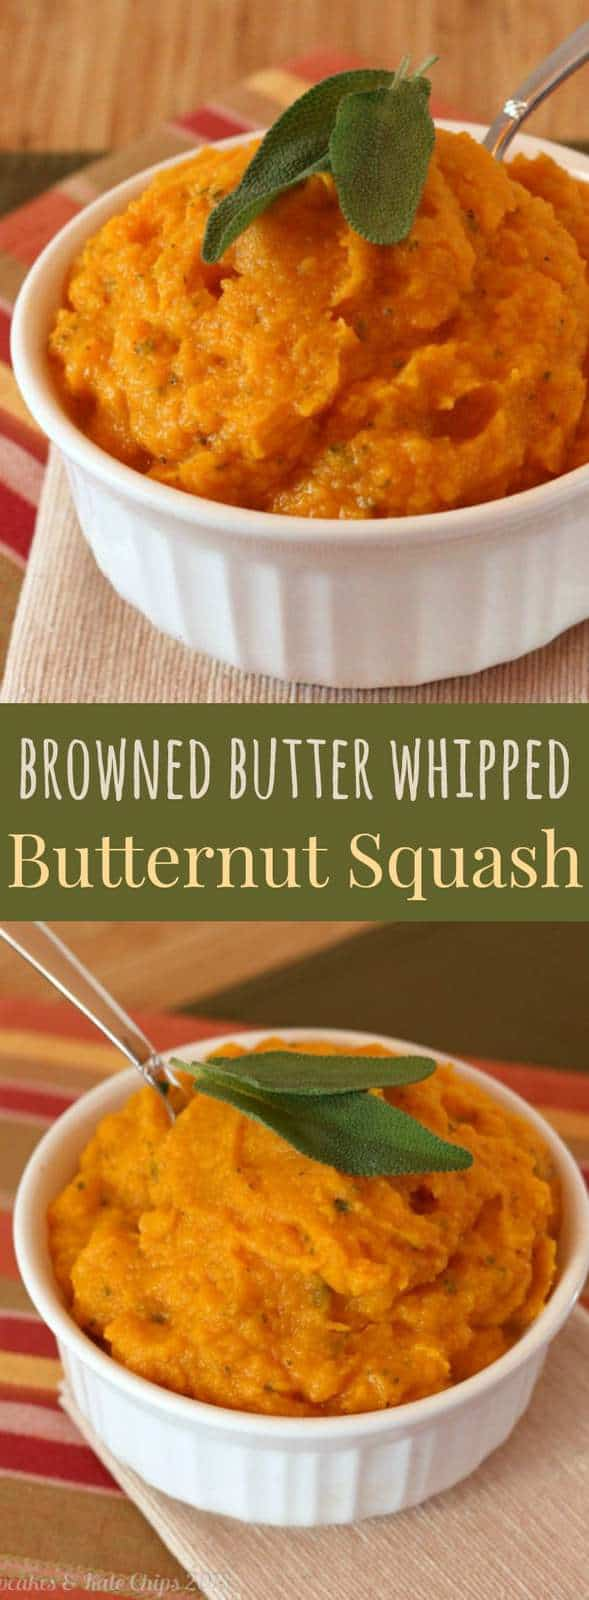 Browned Butter Whipped Butternut Squash - an easy, healthy side dish. Gluten free, low carb, paleo